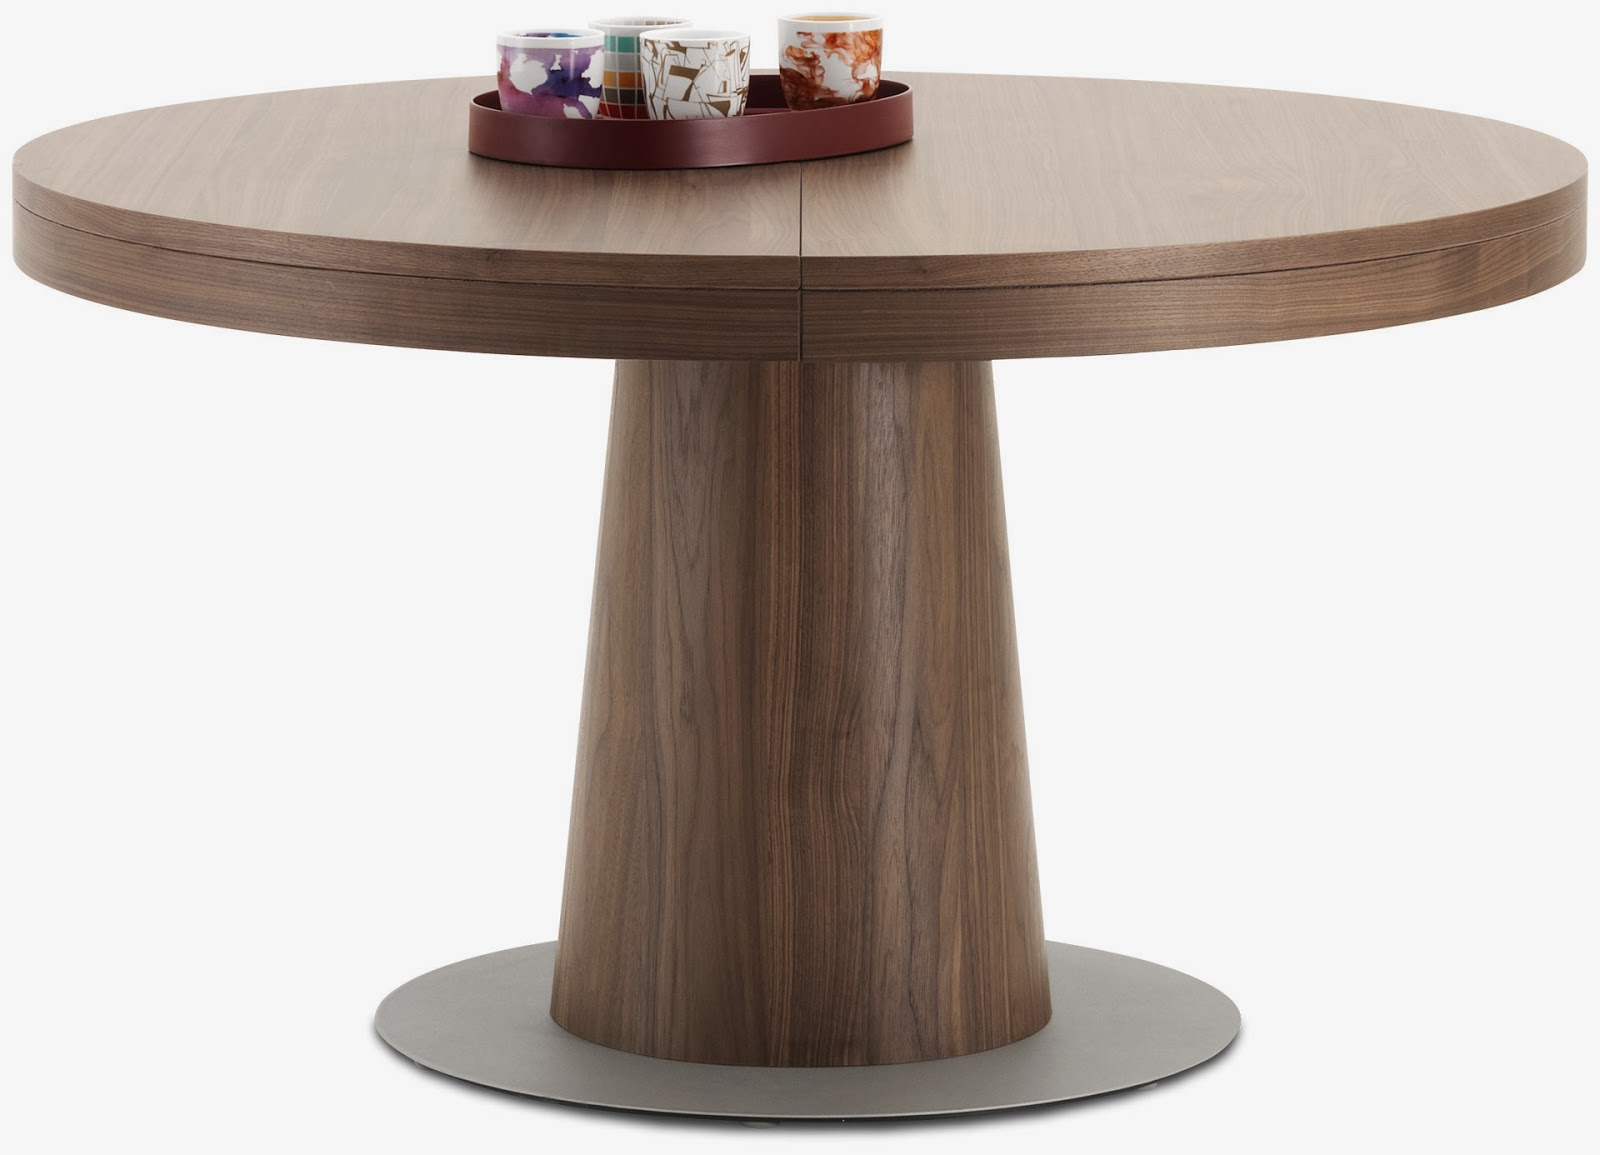 Studio annetta january 2014 for One leg dining table